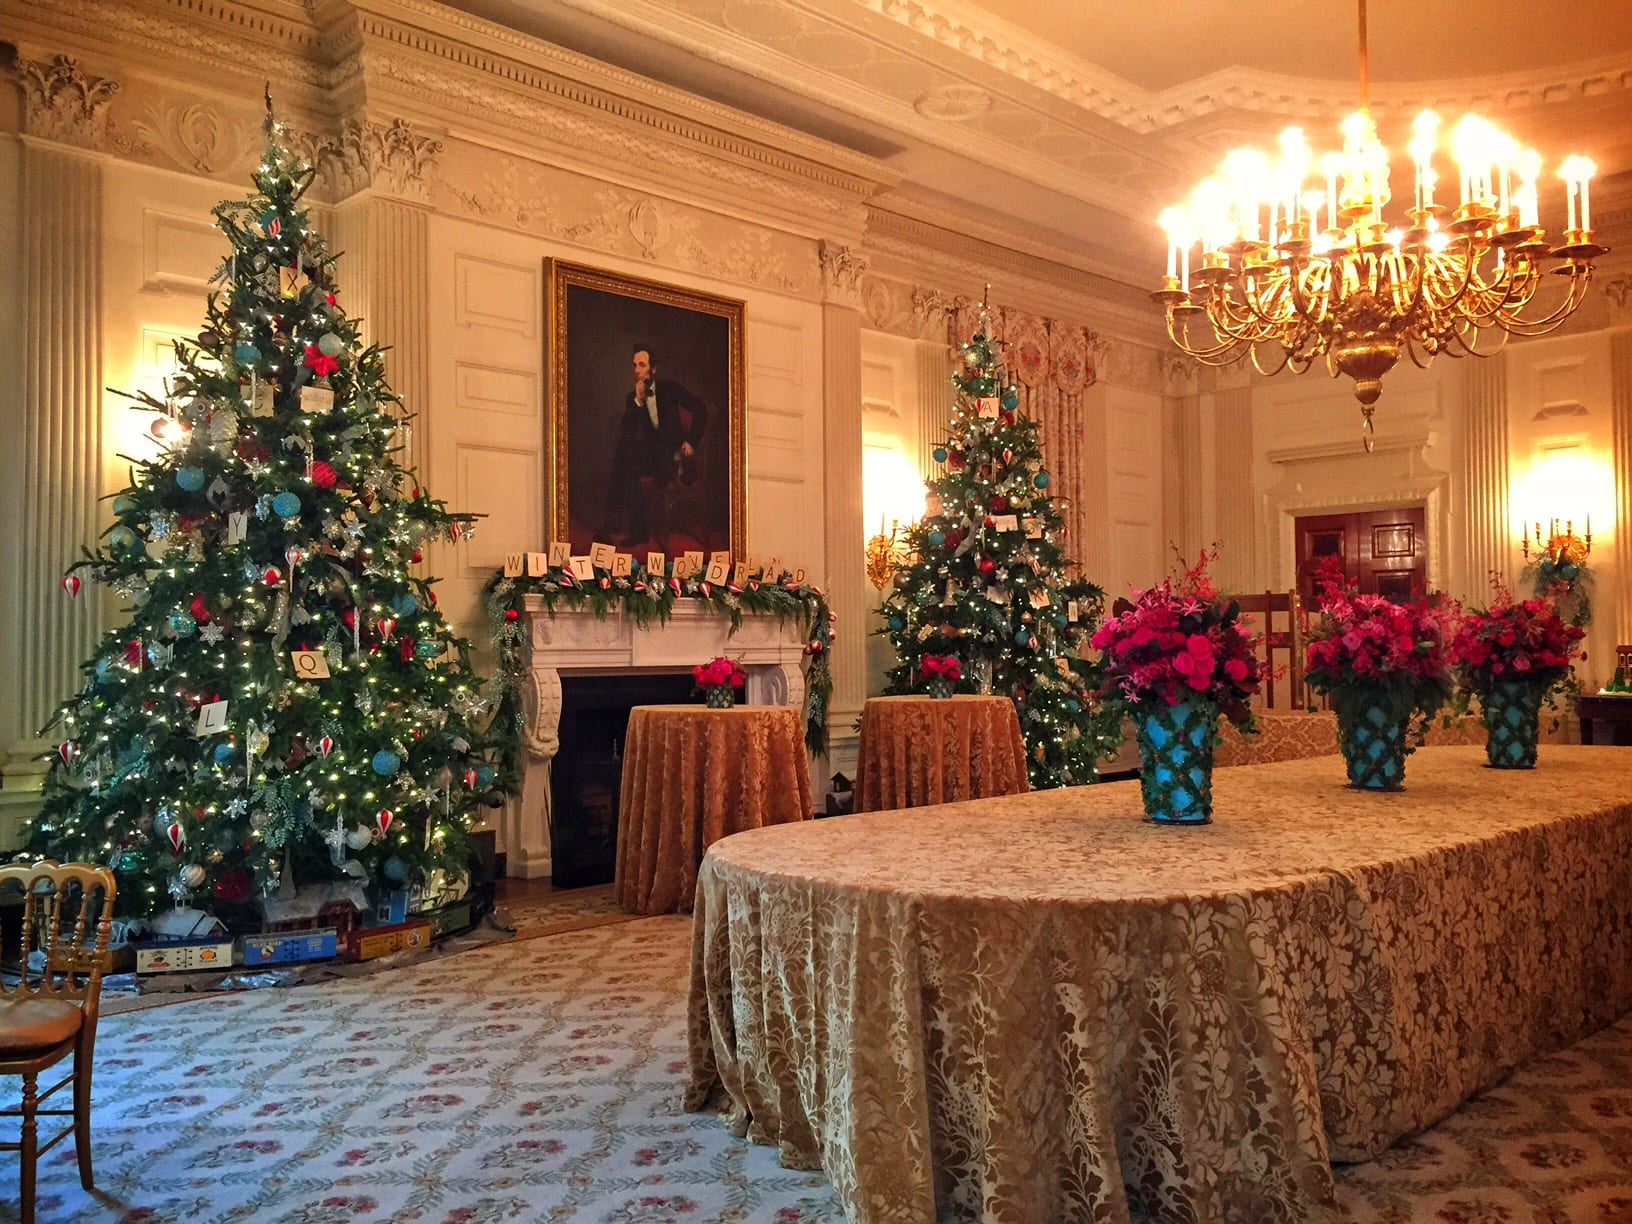 white house tour request - 28 images - white house tours